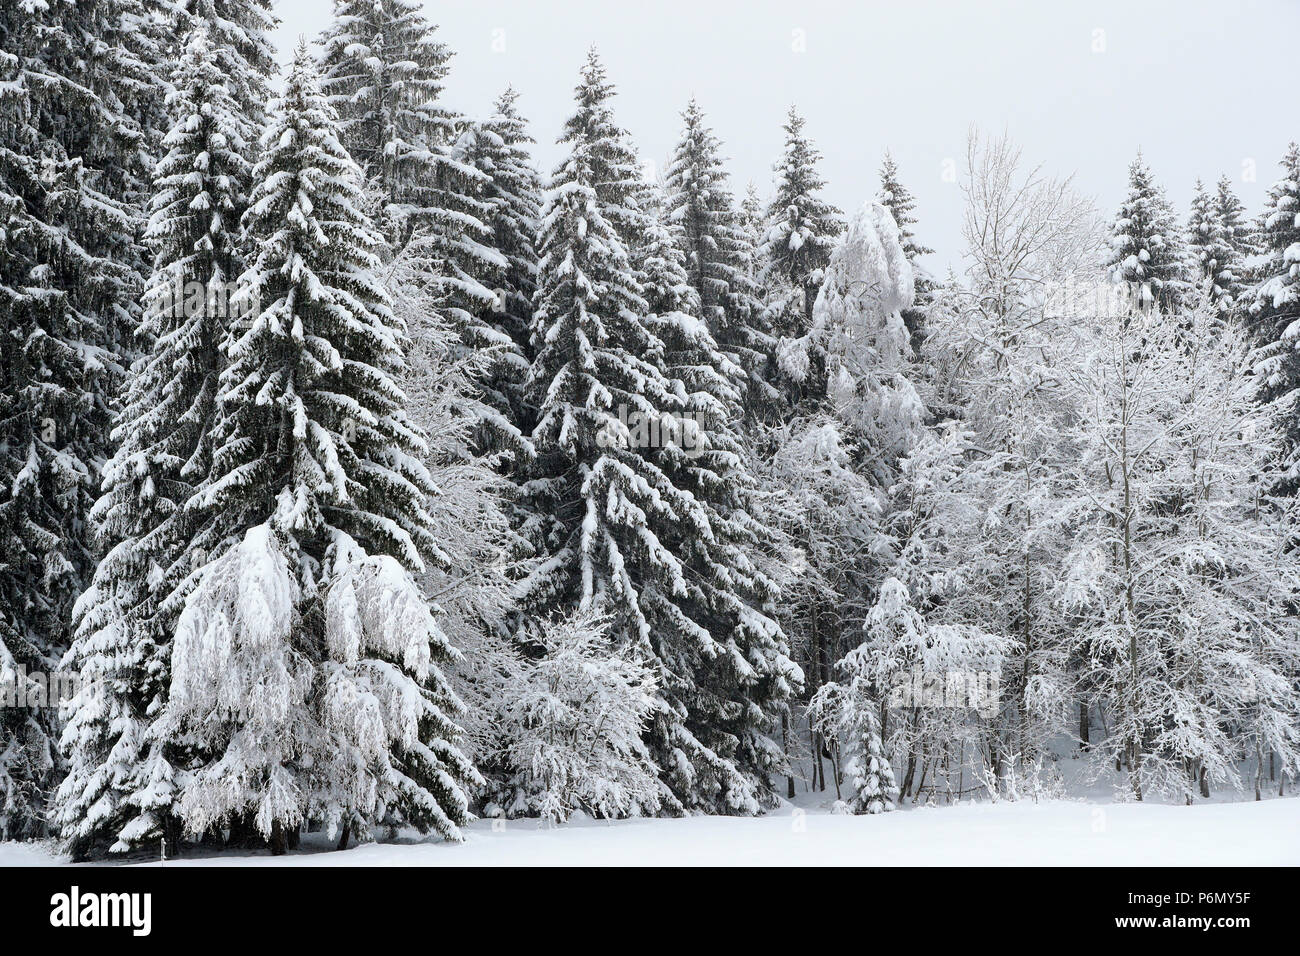 French Alps.  Snow covered fir trees in winter.  Saint-Gervais. France. - Stock Image